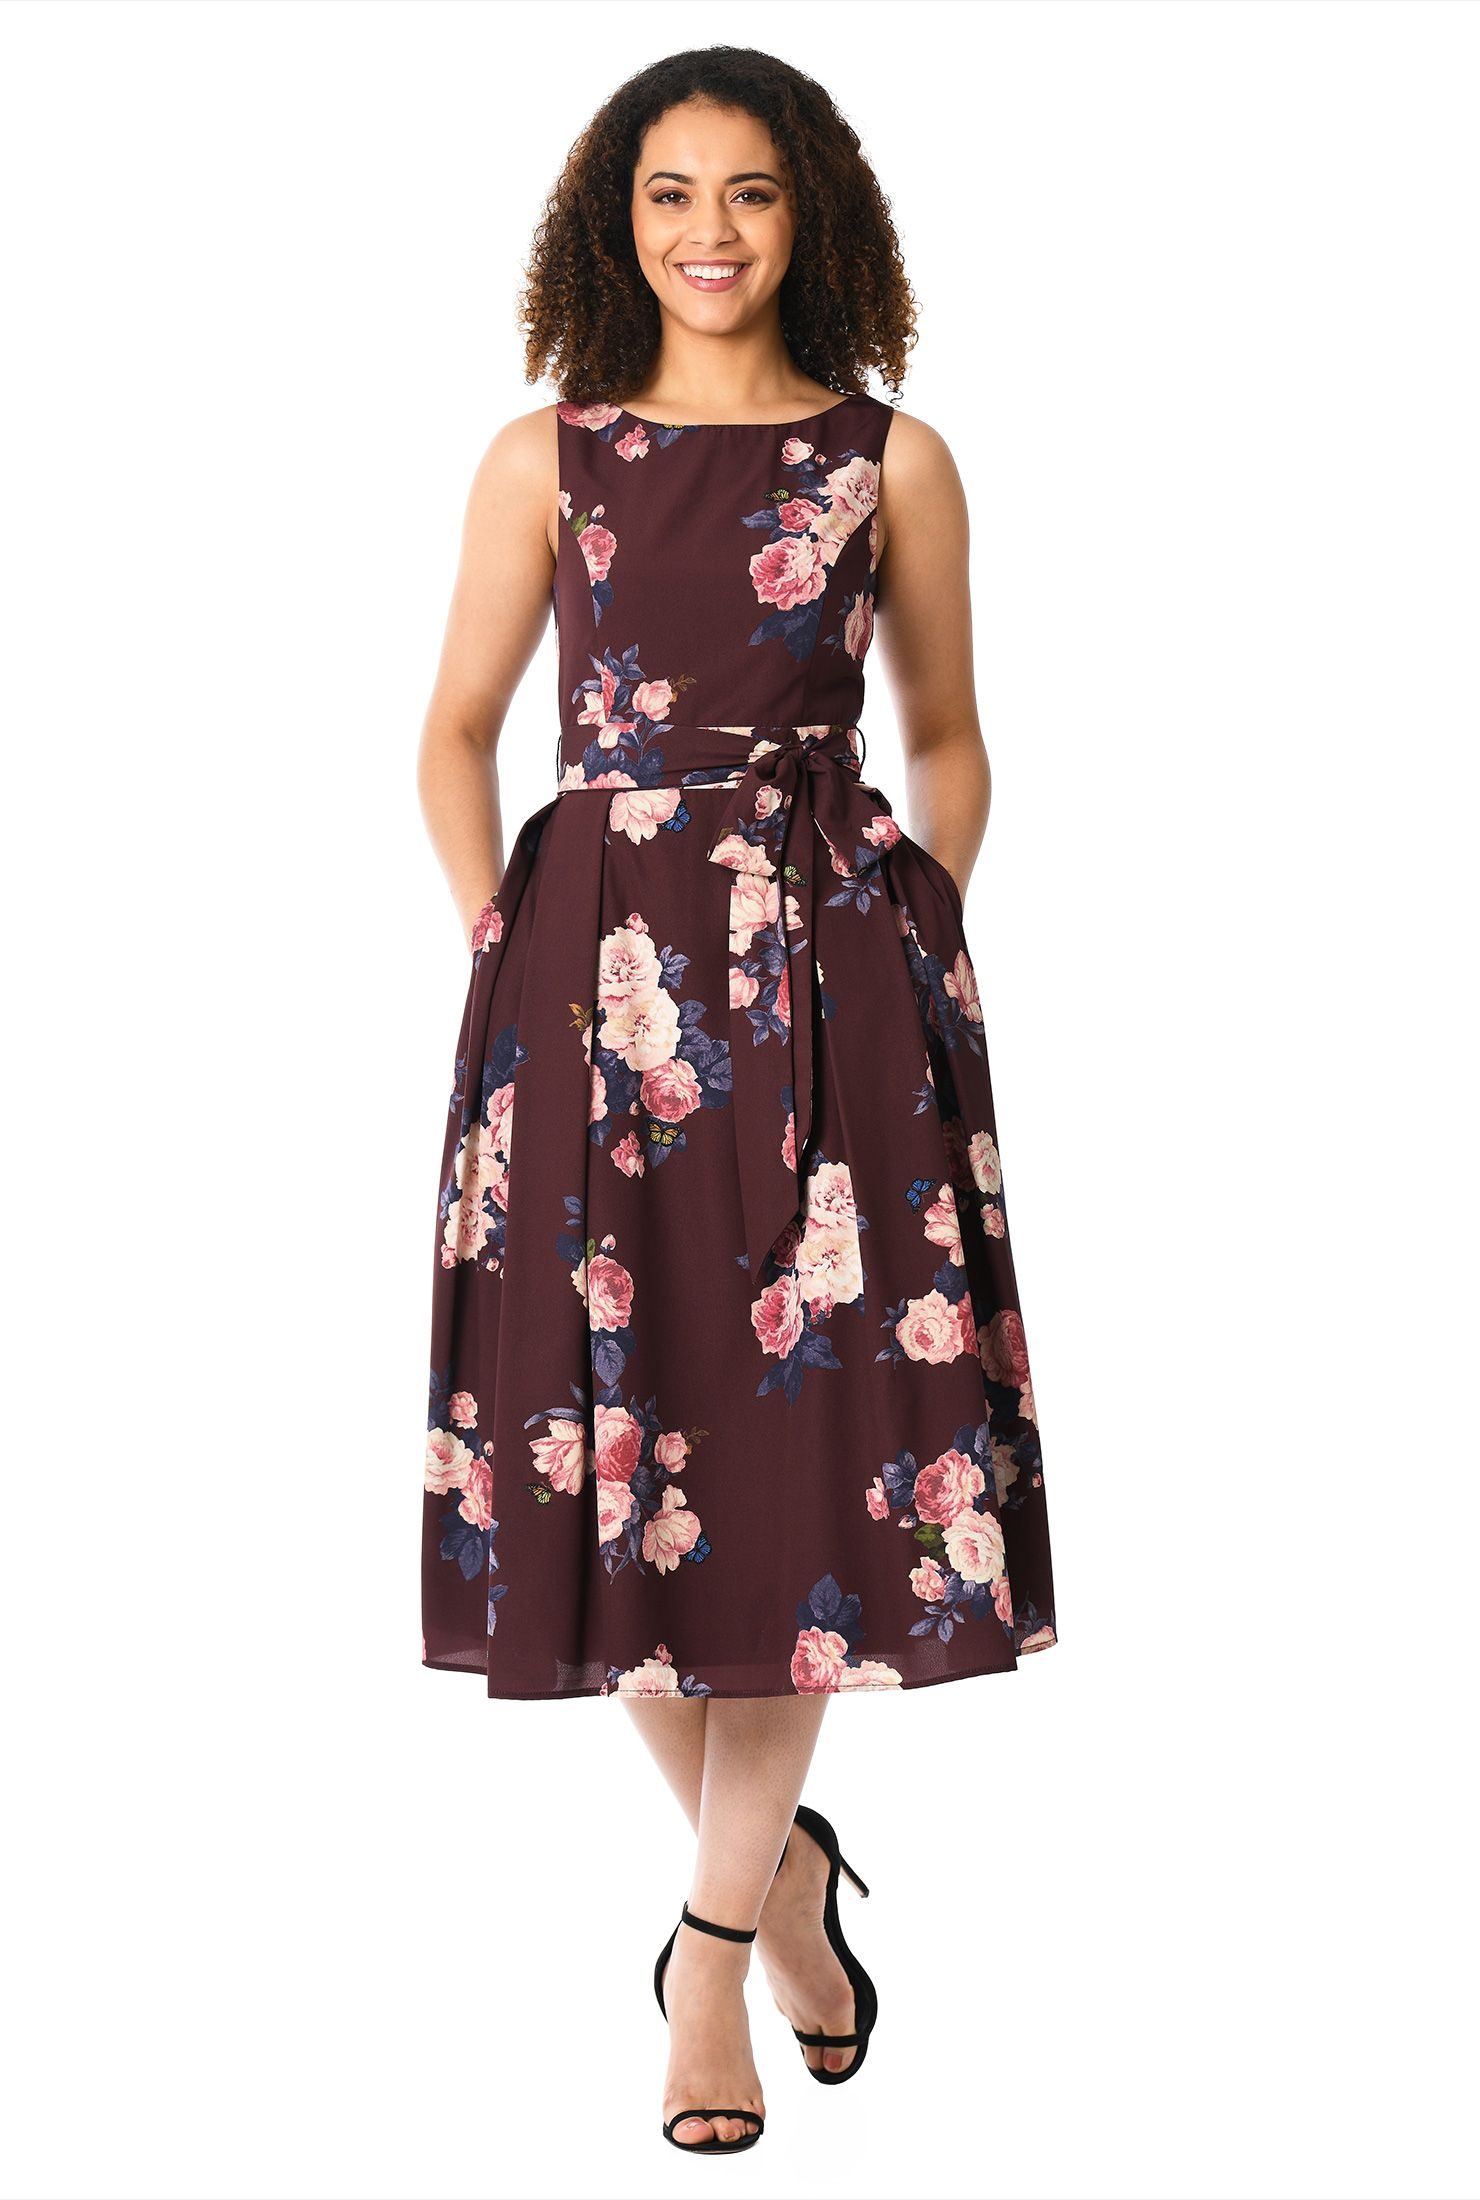 5e3da0ee612a4 Designer America  Supplying Exclusive Designer Fashion at Great Prices.  Wide Range of Women s Clothing.